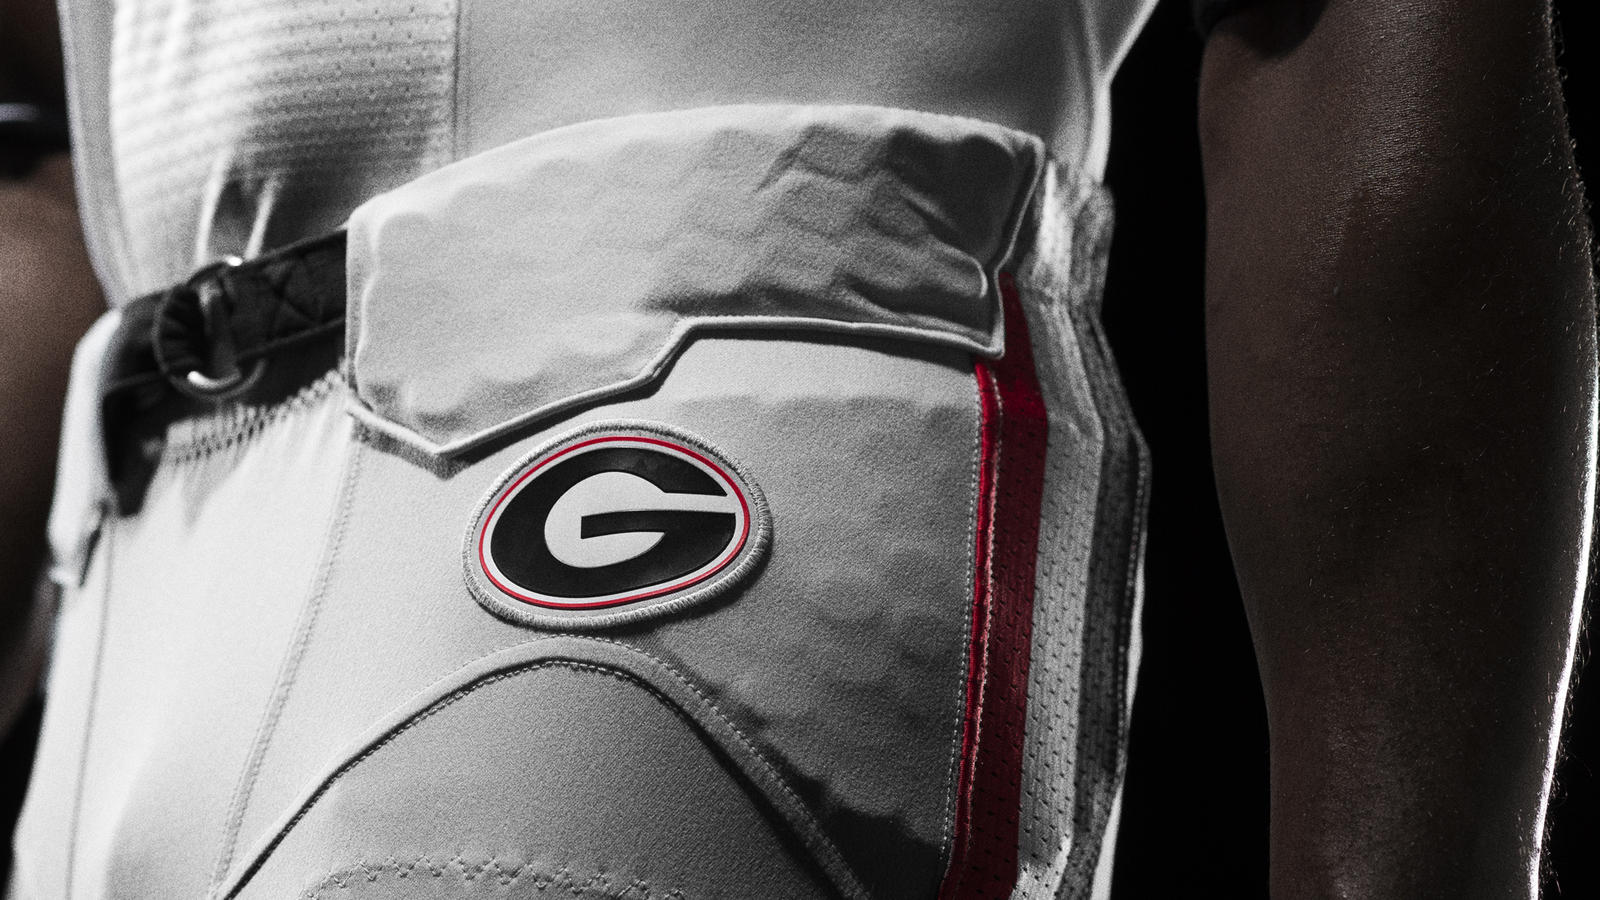 Georgia Football detail